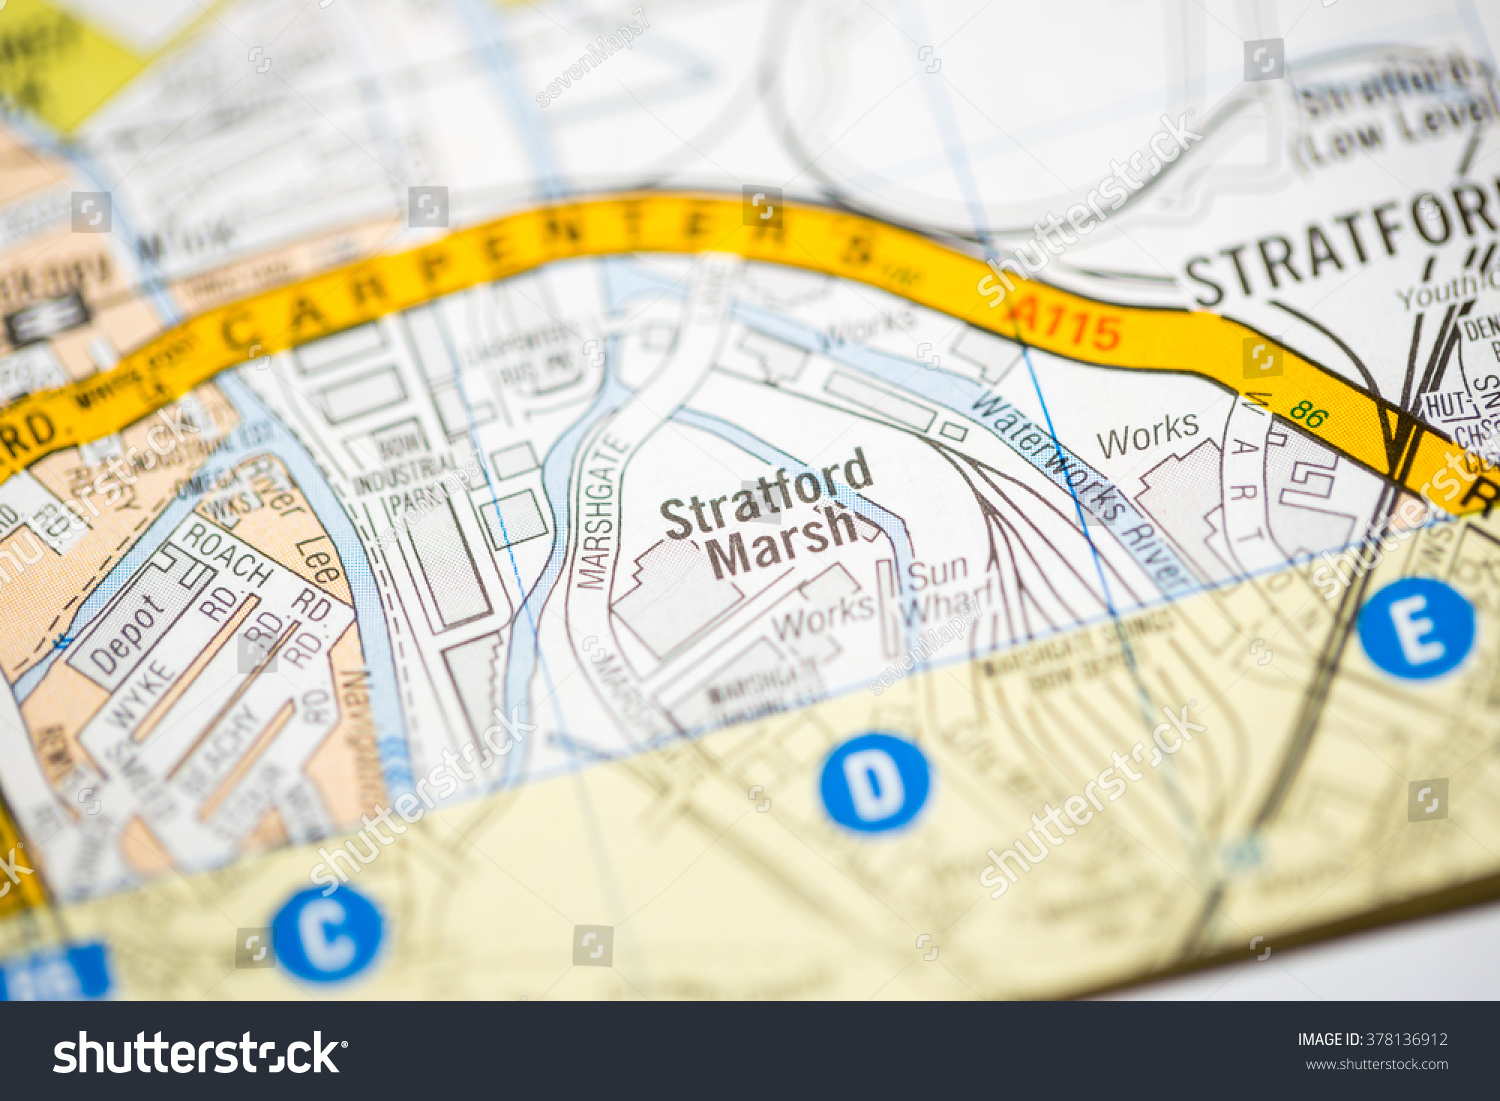 Stratford Marsh London Uk Map Stock Photo Royalty Free 378136912